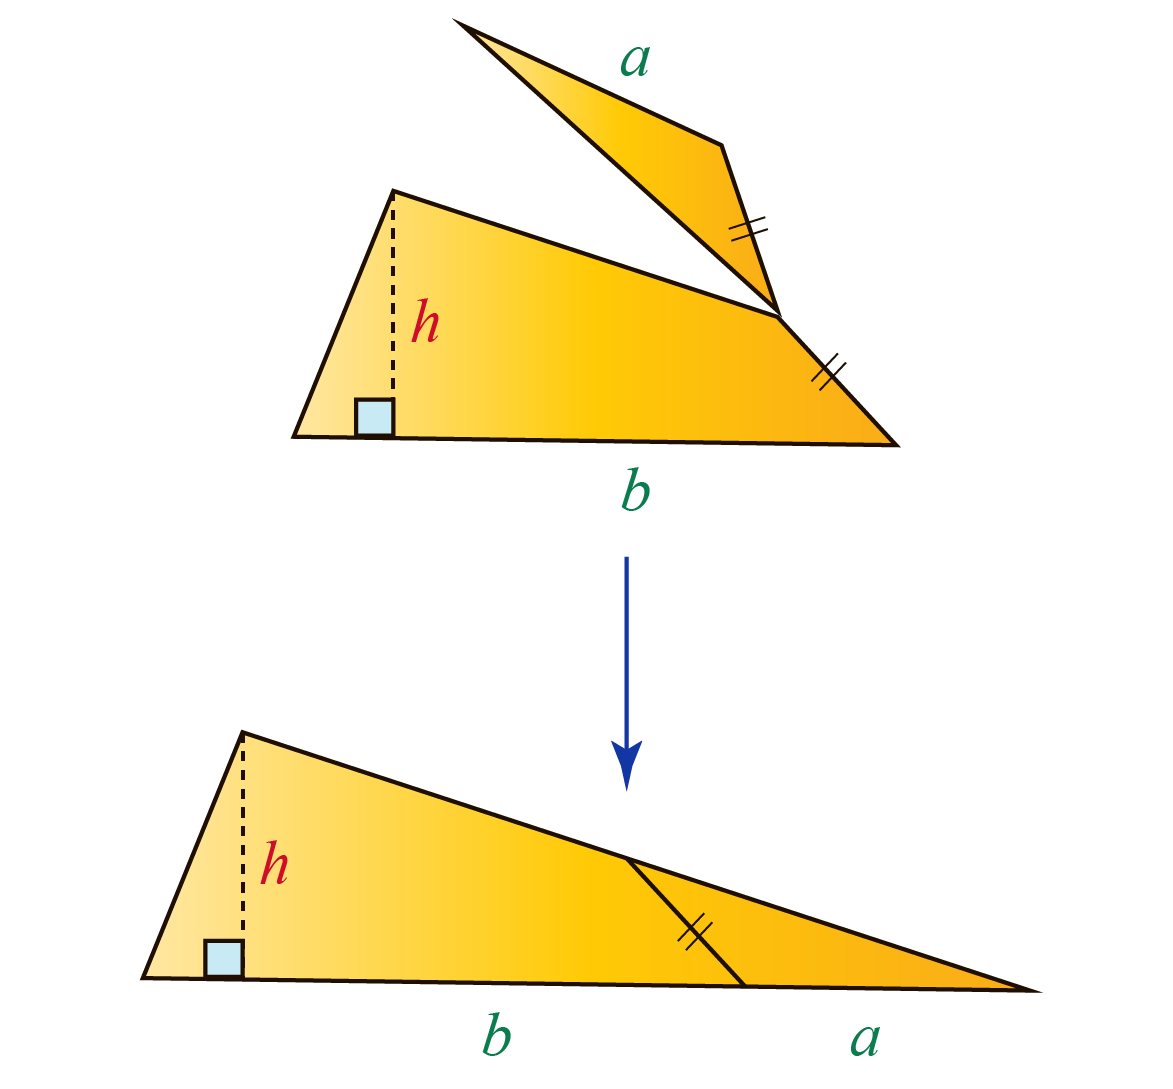 Proof of formula of area of a trapezoid using a triangle